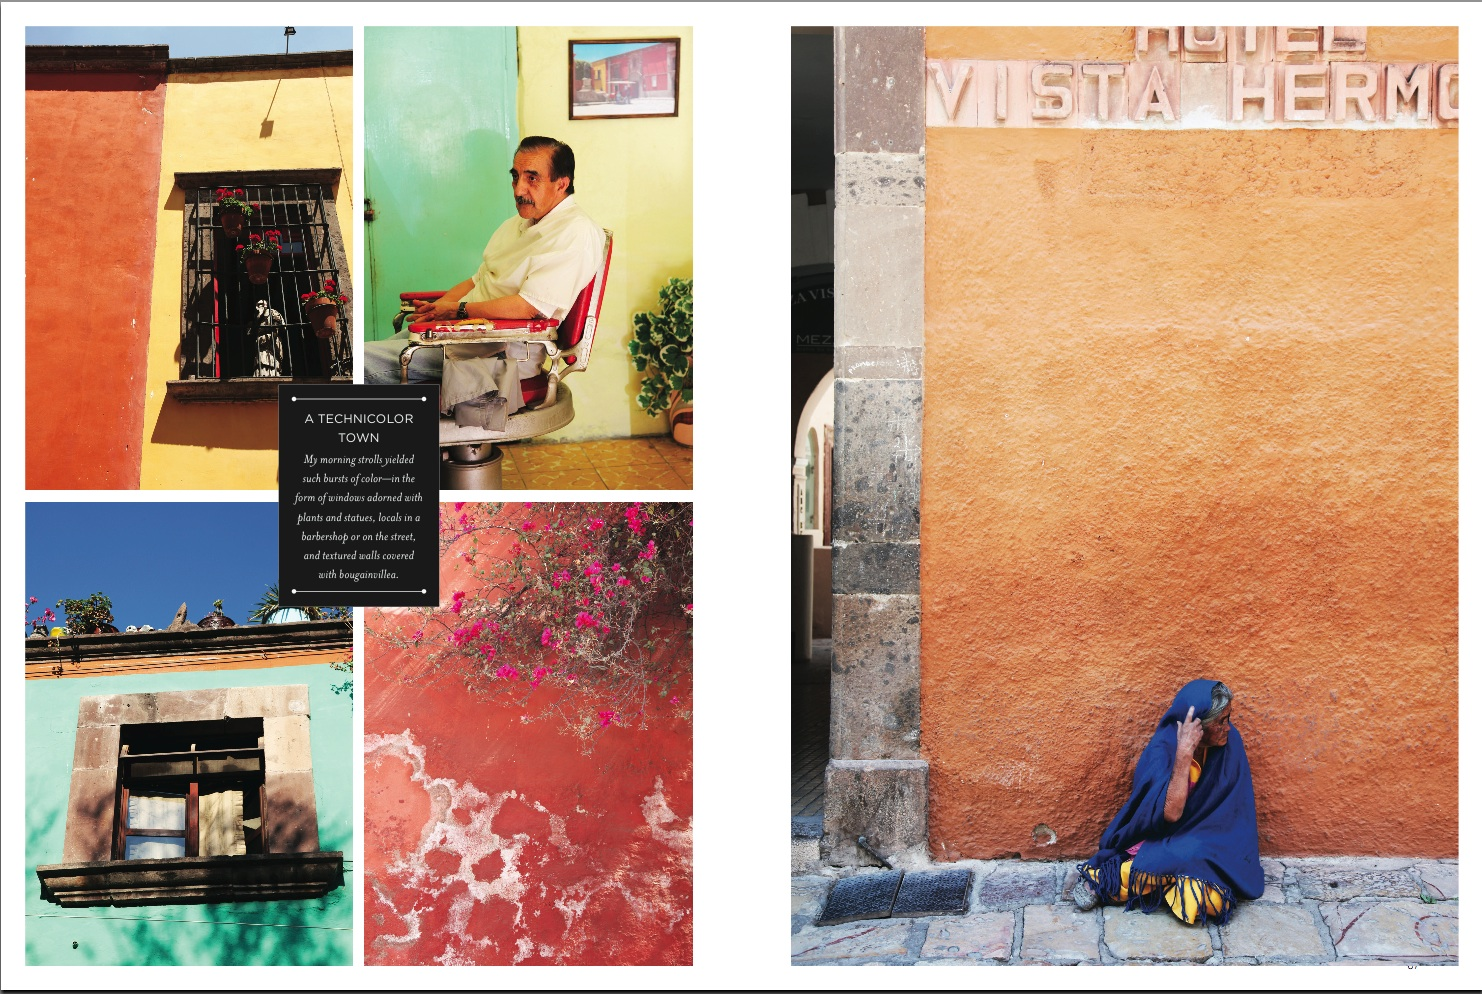 San Miguel de Allende Mexico Travel Feature for Anthology Magazine